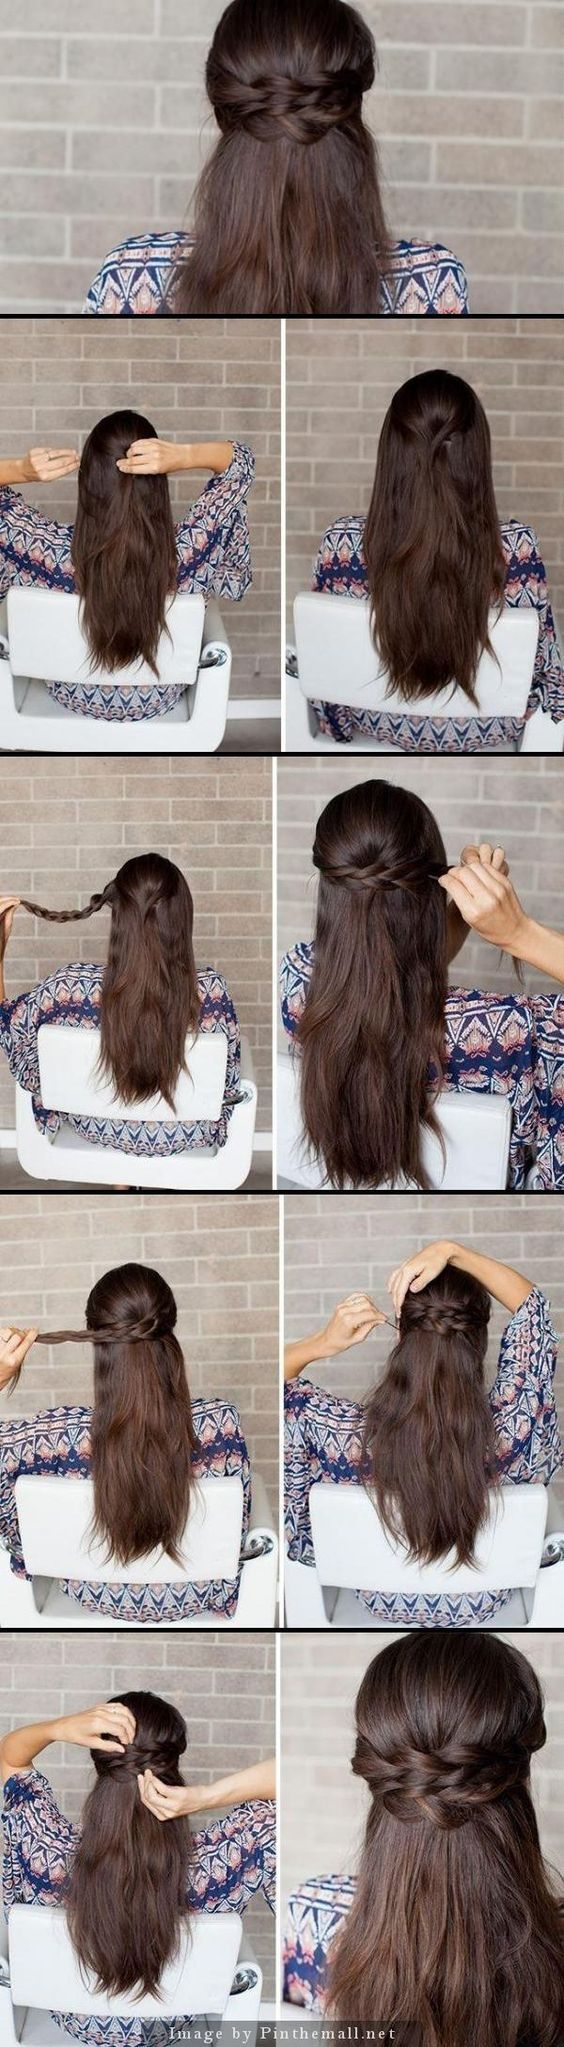 best 25+ date night hair ideas on pinterest | diy hair, glamorous